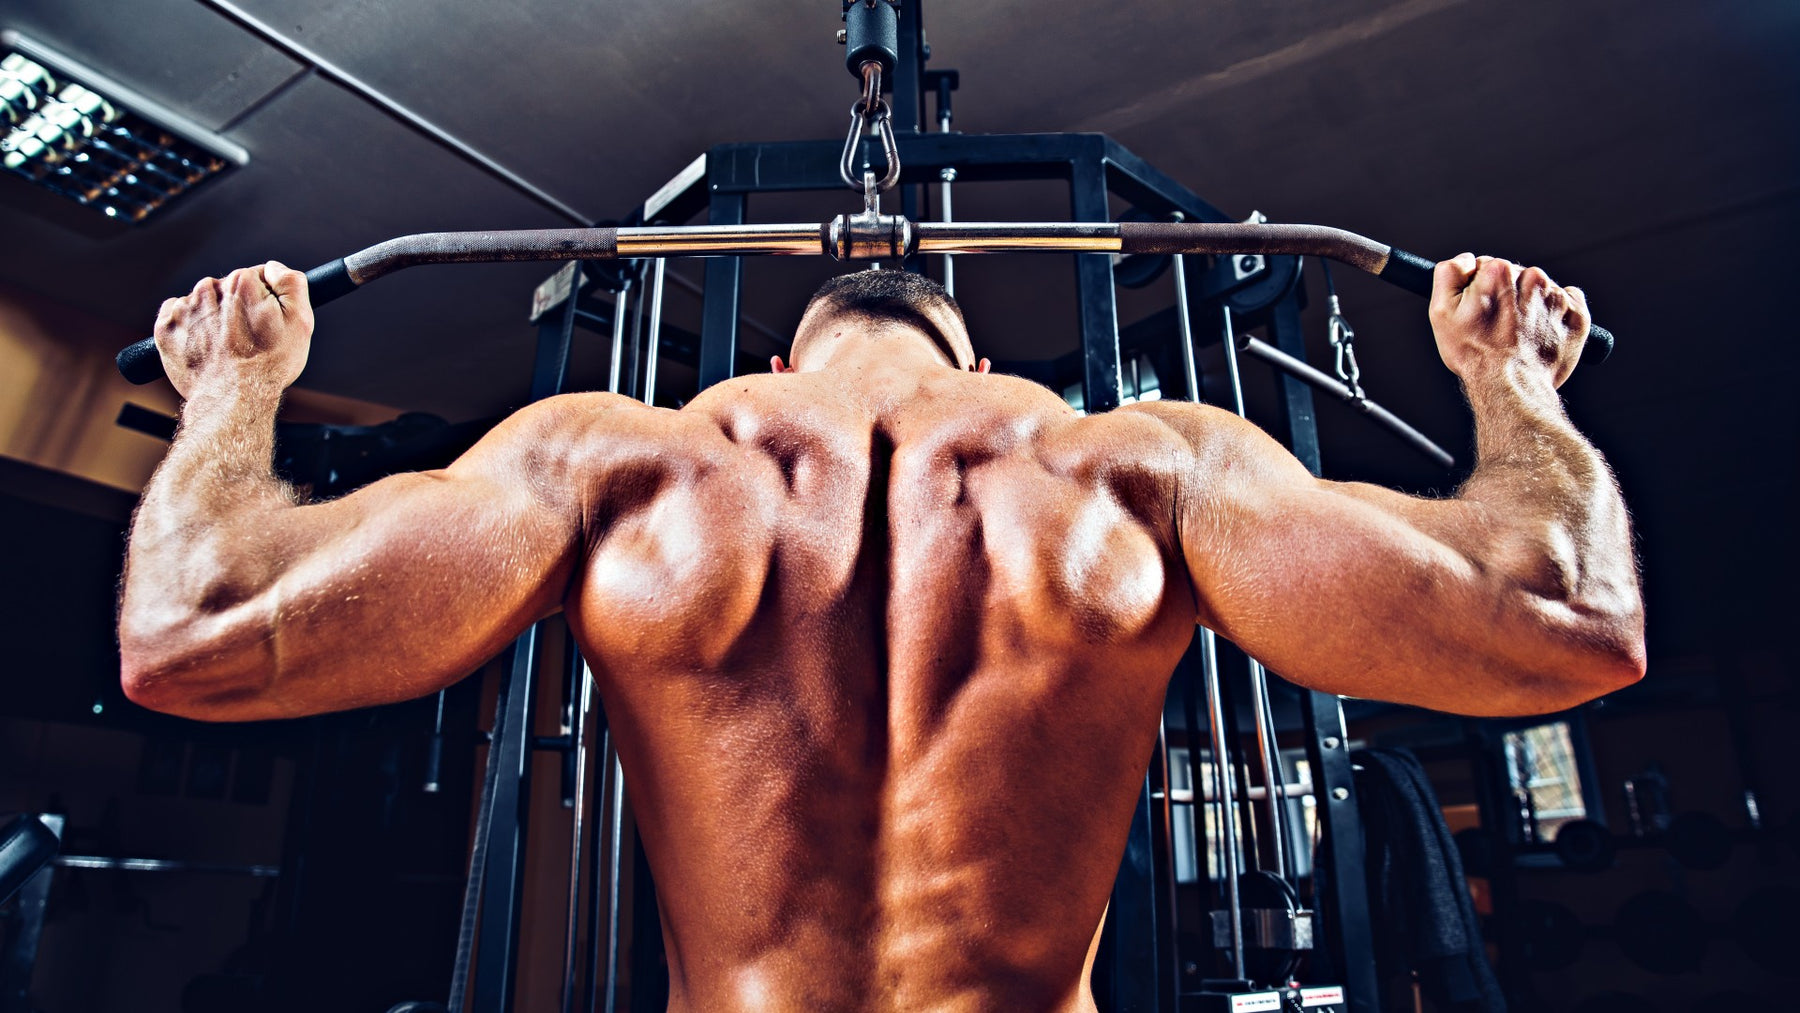 How to Perform the Lat Pulldown Behind the Neck